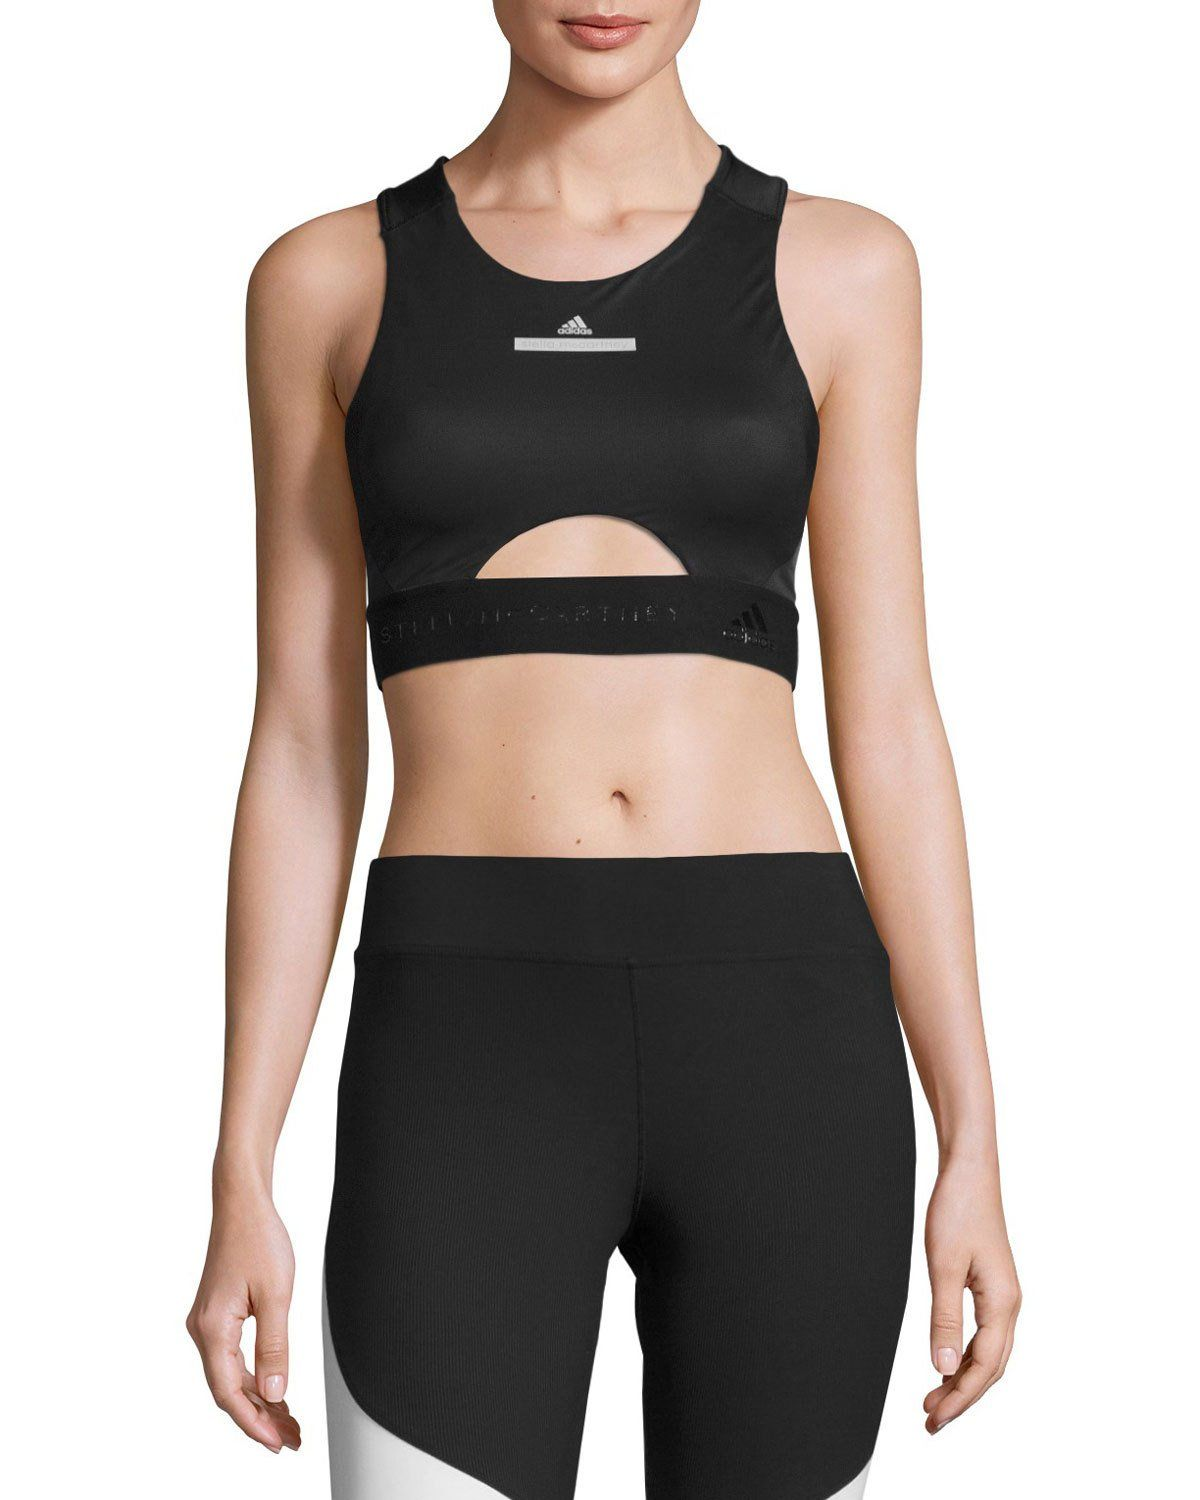 b3dcdda3a1e95 ADIDAS BY STELLA MCCARTNEY RUN PERFORMANCE CROP TOP SPORTS BRA ...